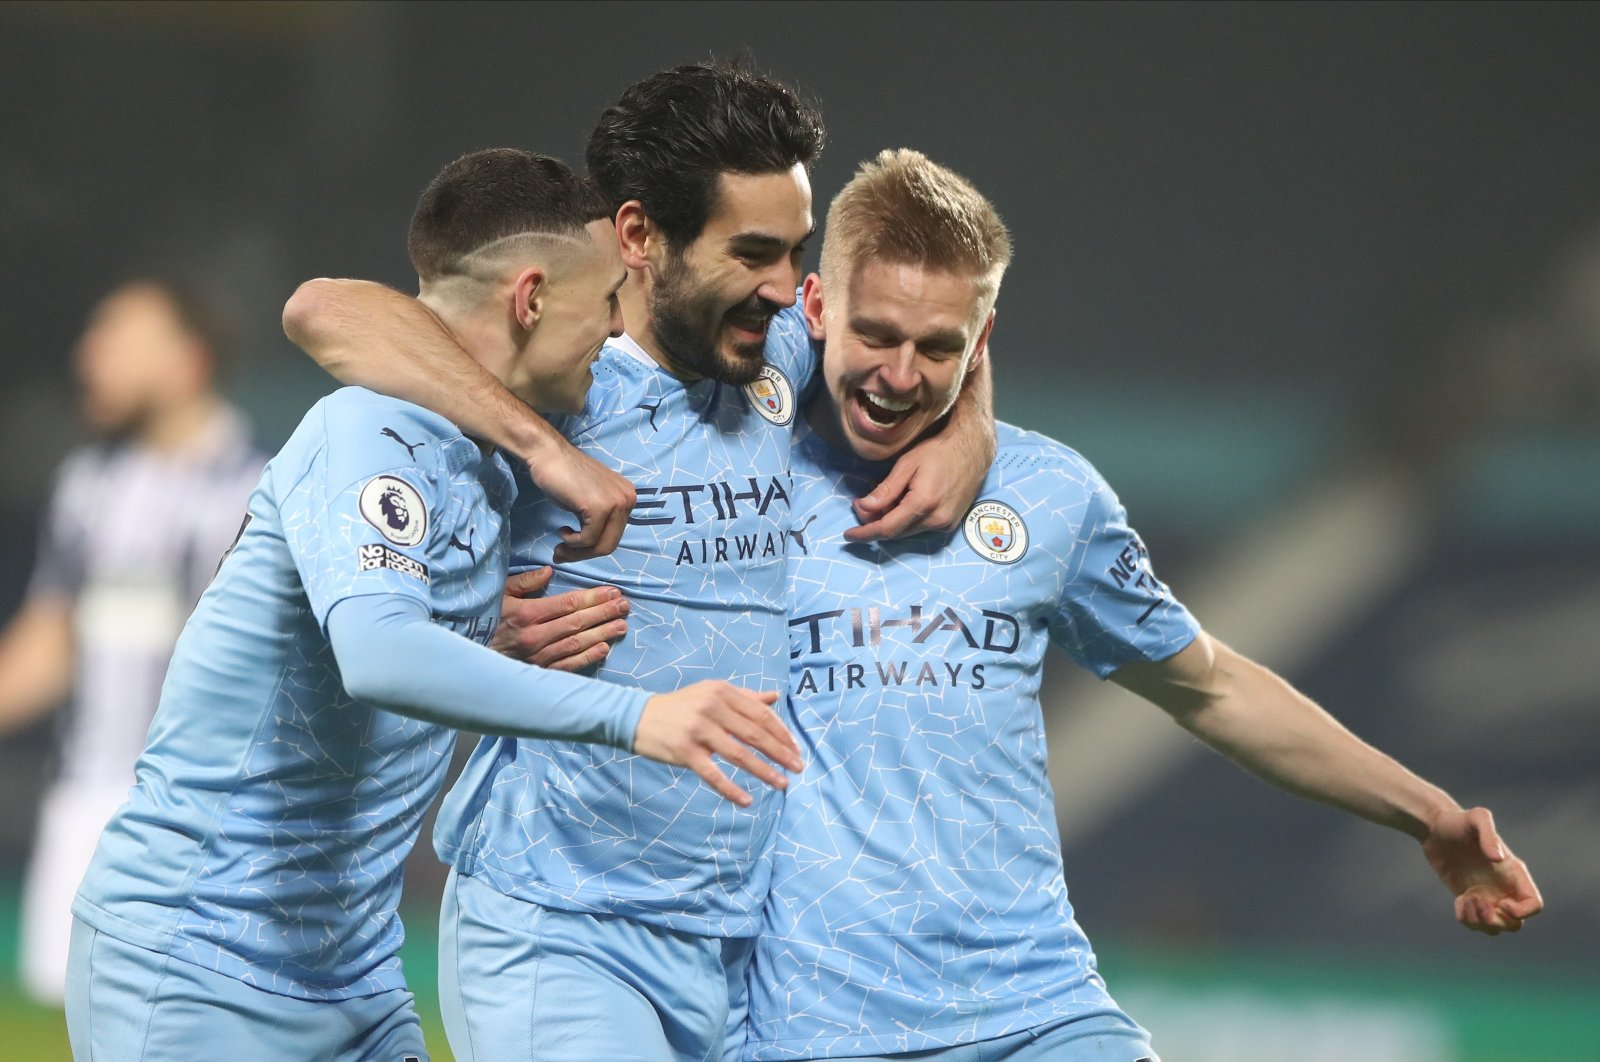 Manchester City's Ilkay Gündoğan (C) celebrates with teammates Oleksandr Zinchenko (R) and Phil Foden (L) after scoring a goal in a Premier League match against West Bromwich Albion, West Bromwich, England, Jan. 26, 2021. (EPA Photo)